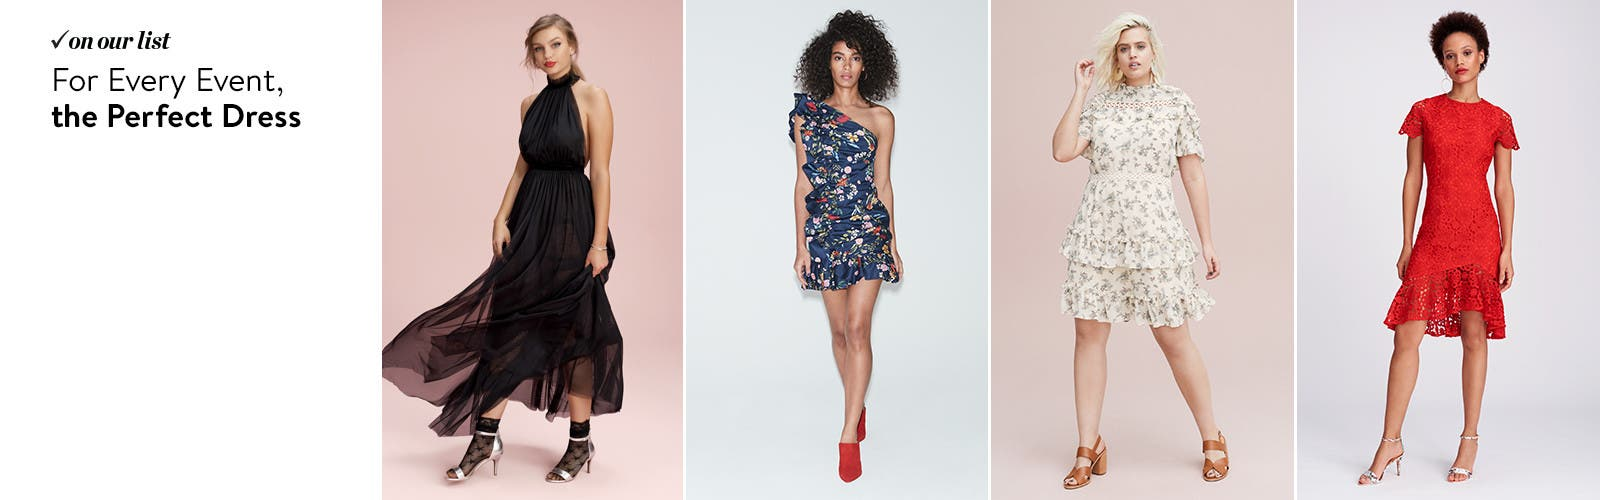 For Every Event, The Perfect Dress.